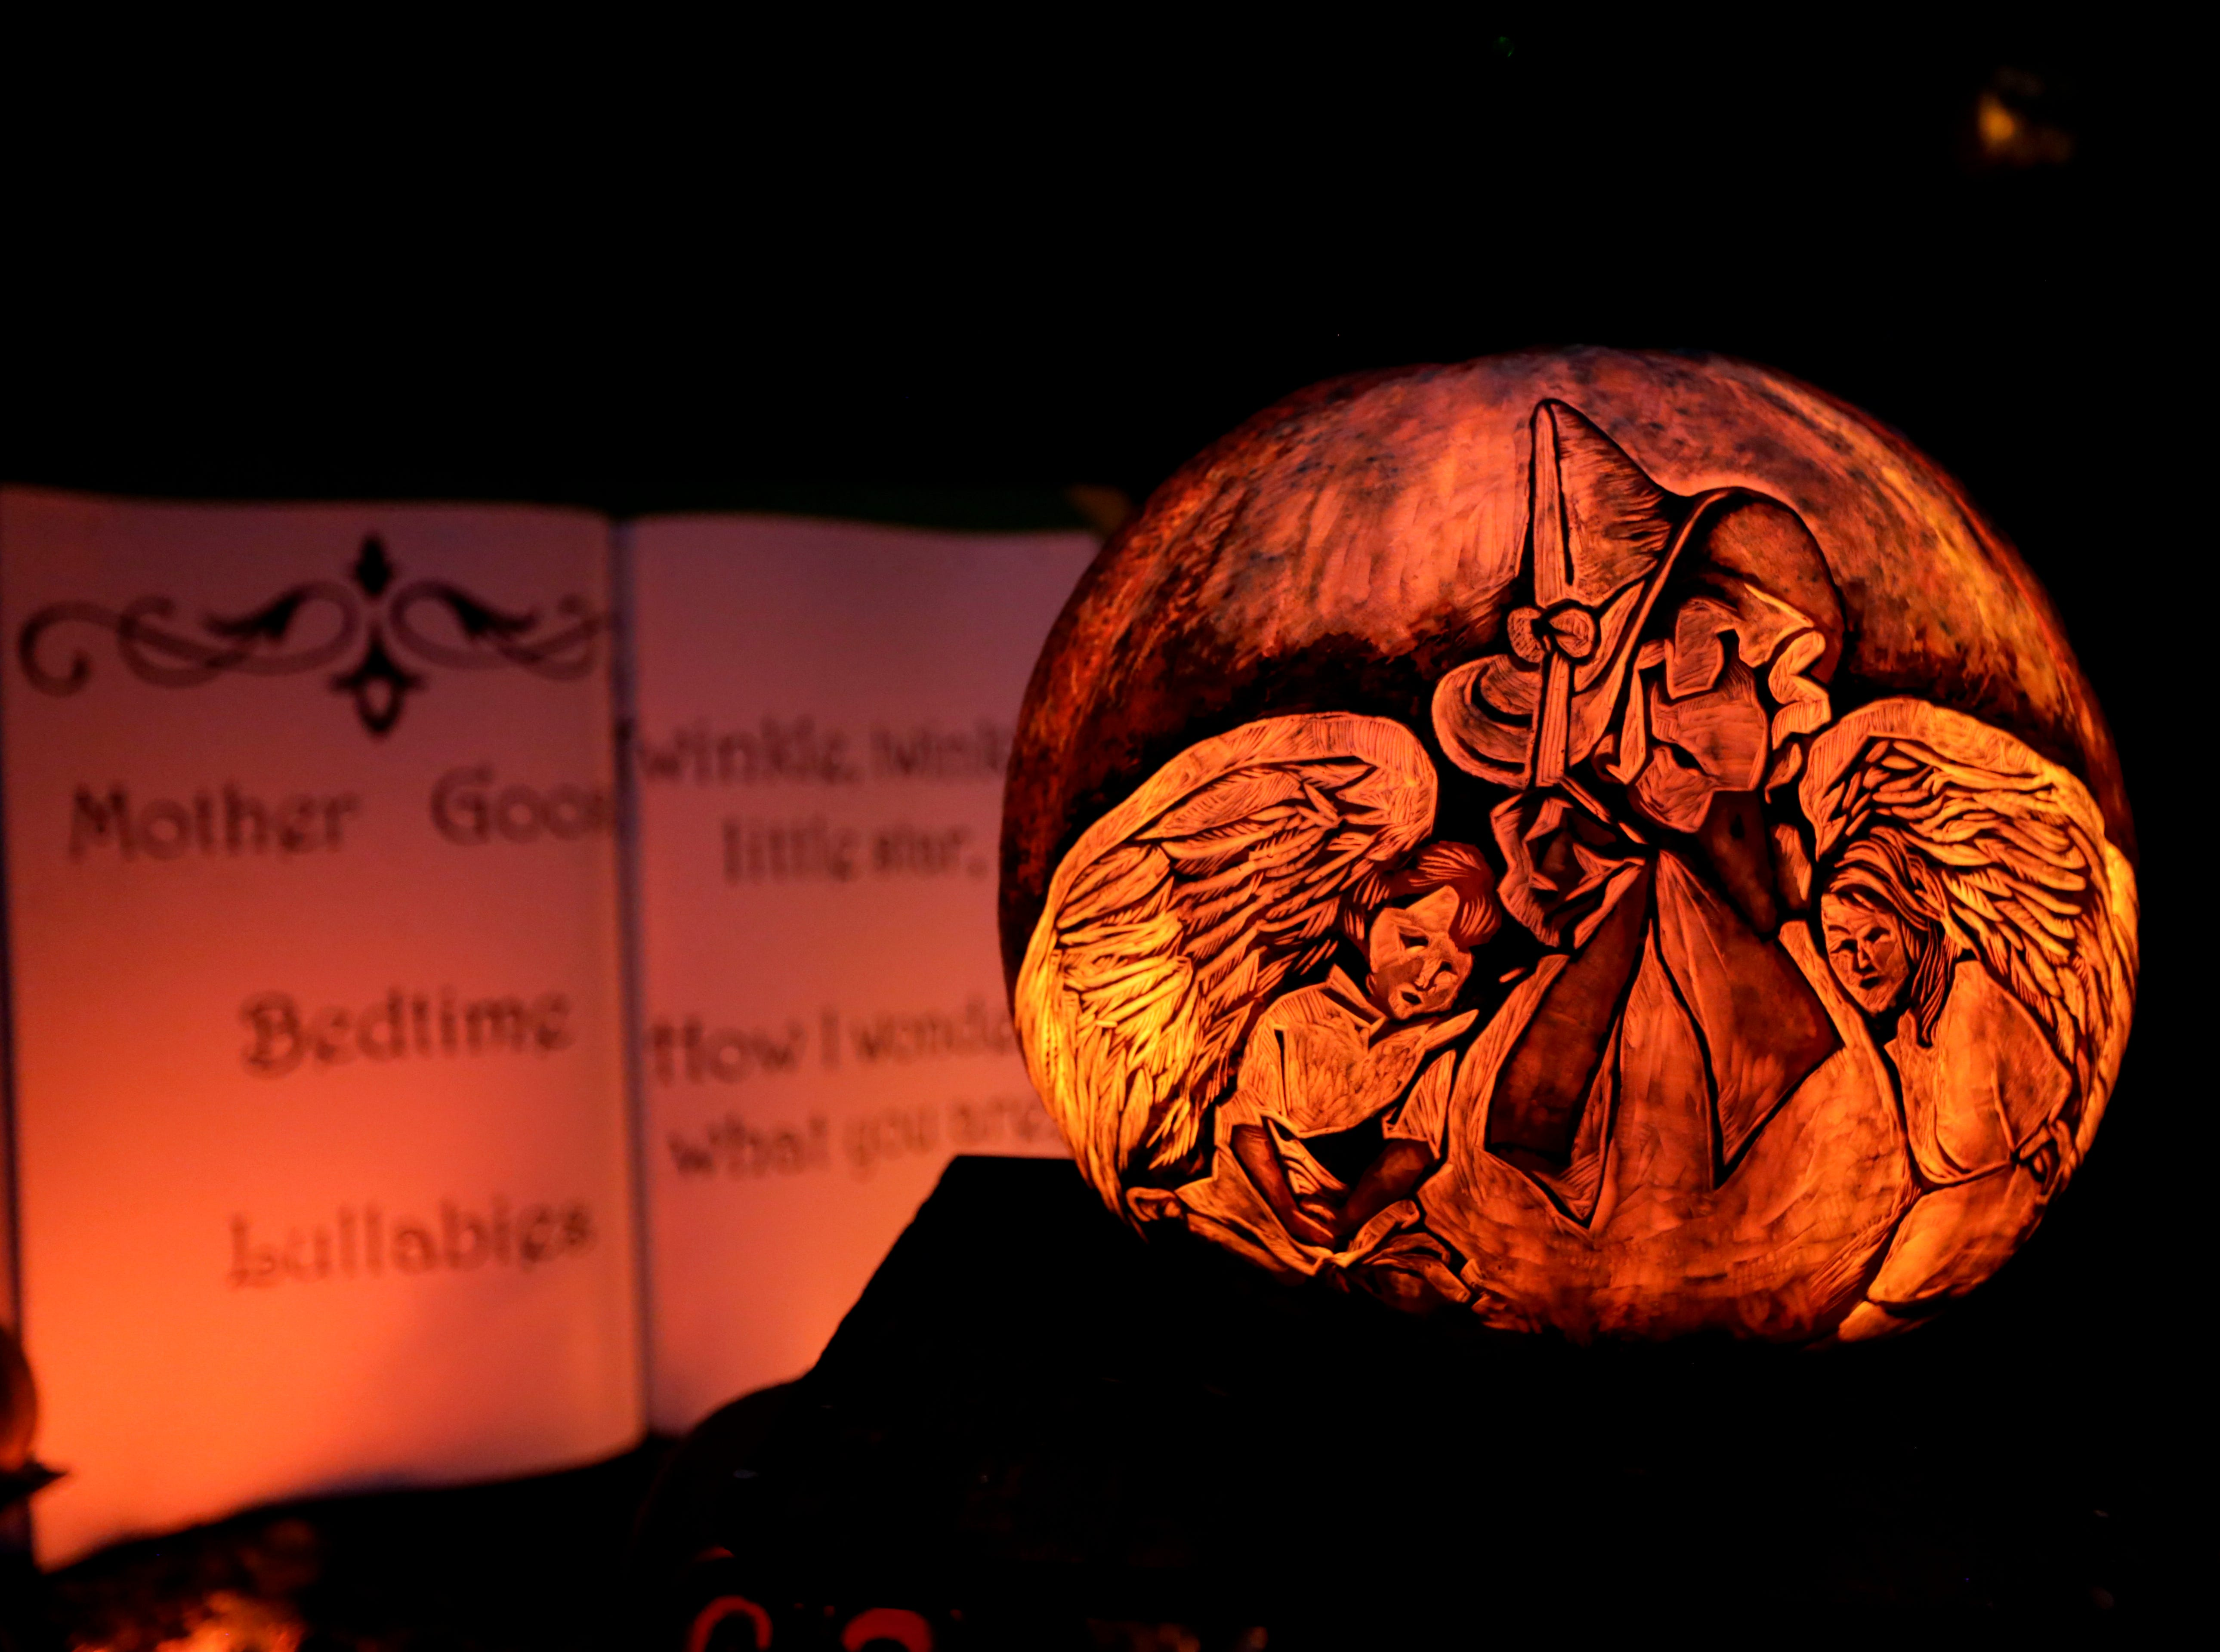 The start of the Mother Goose section at this year's Jack O' Lantern Spectacular.